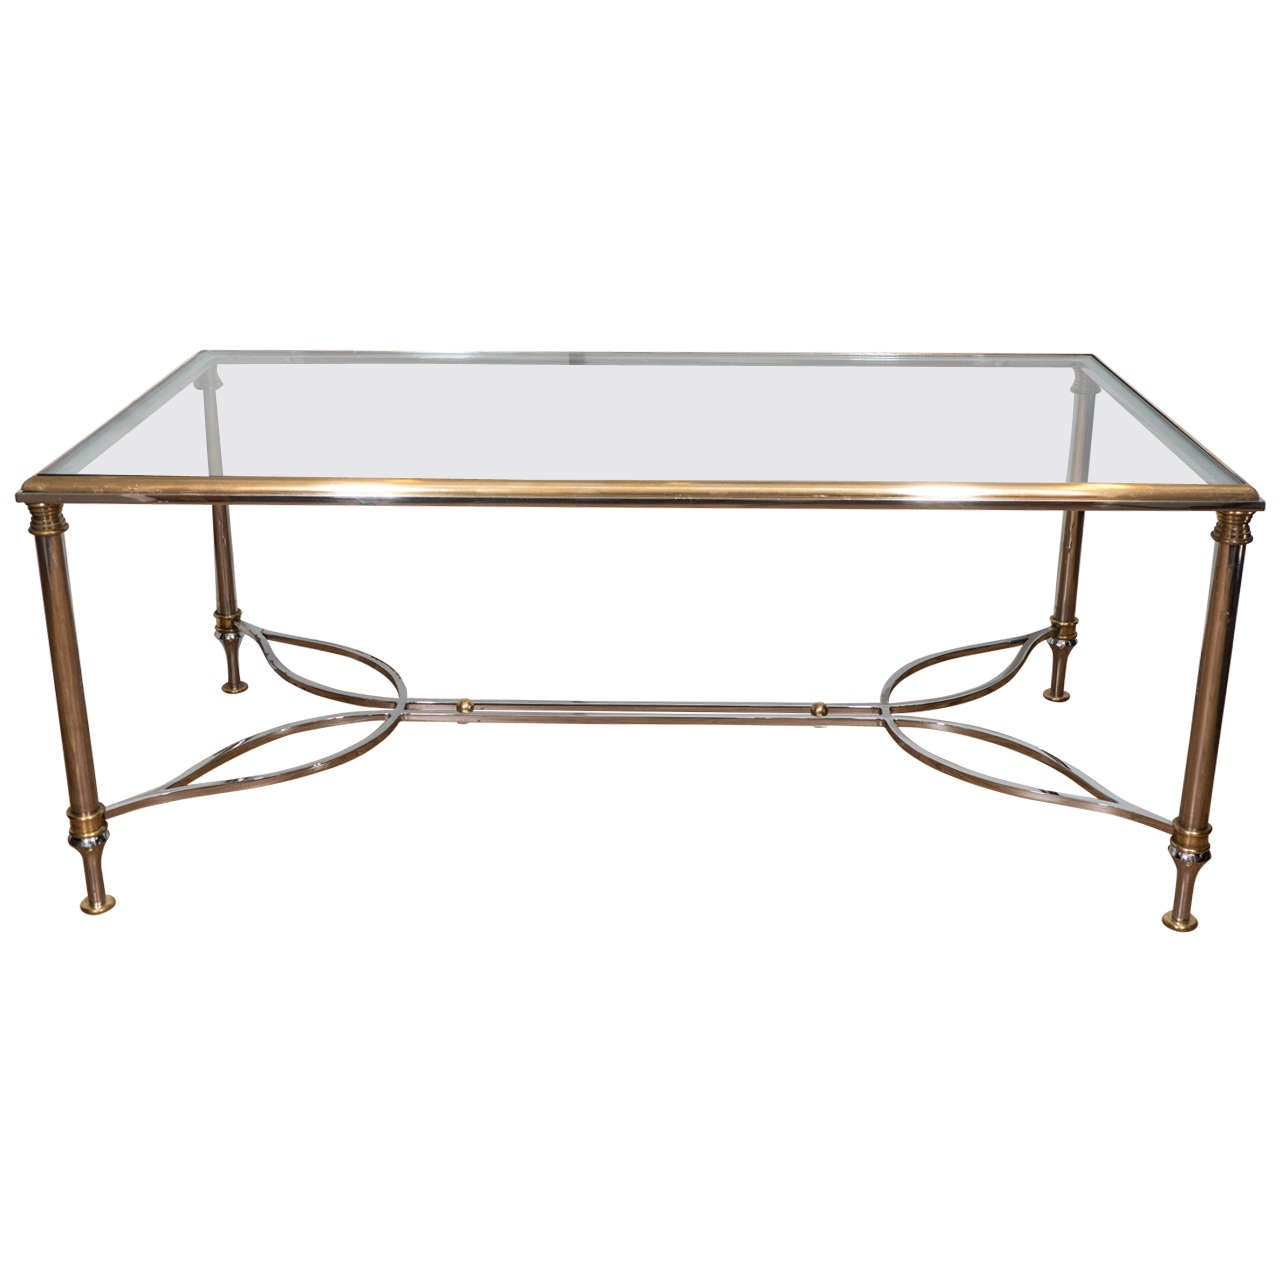 Elegant Brass And Glass Coffee Table: 1970s Brass Rectangular Coffee And Cocktail Table With